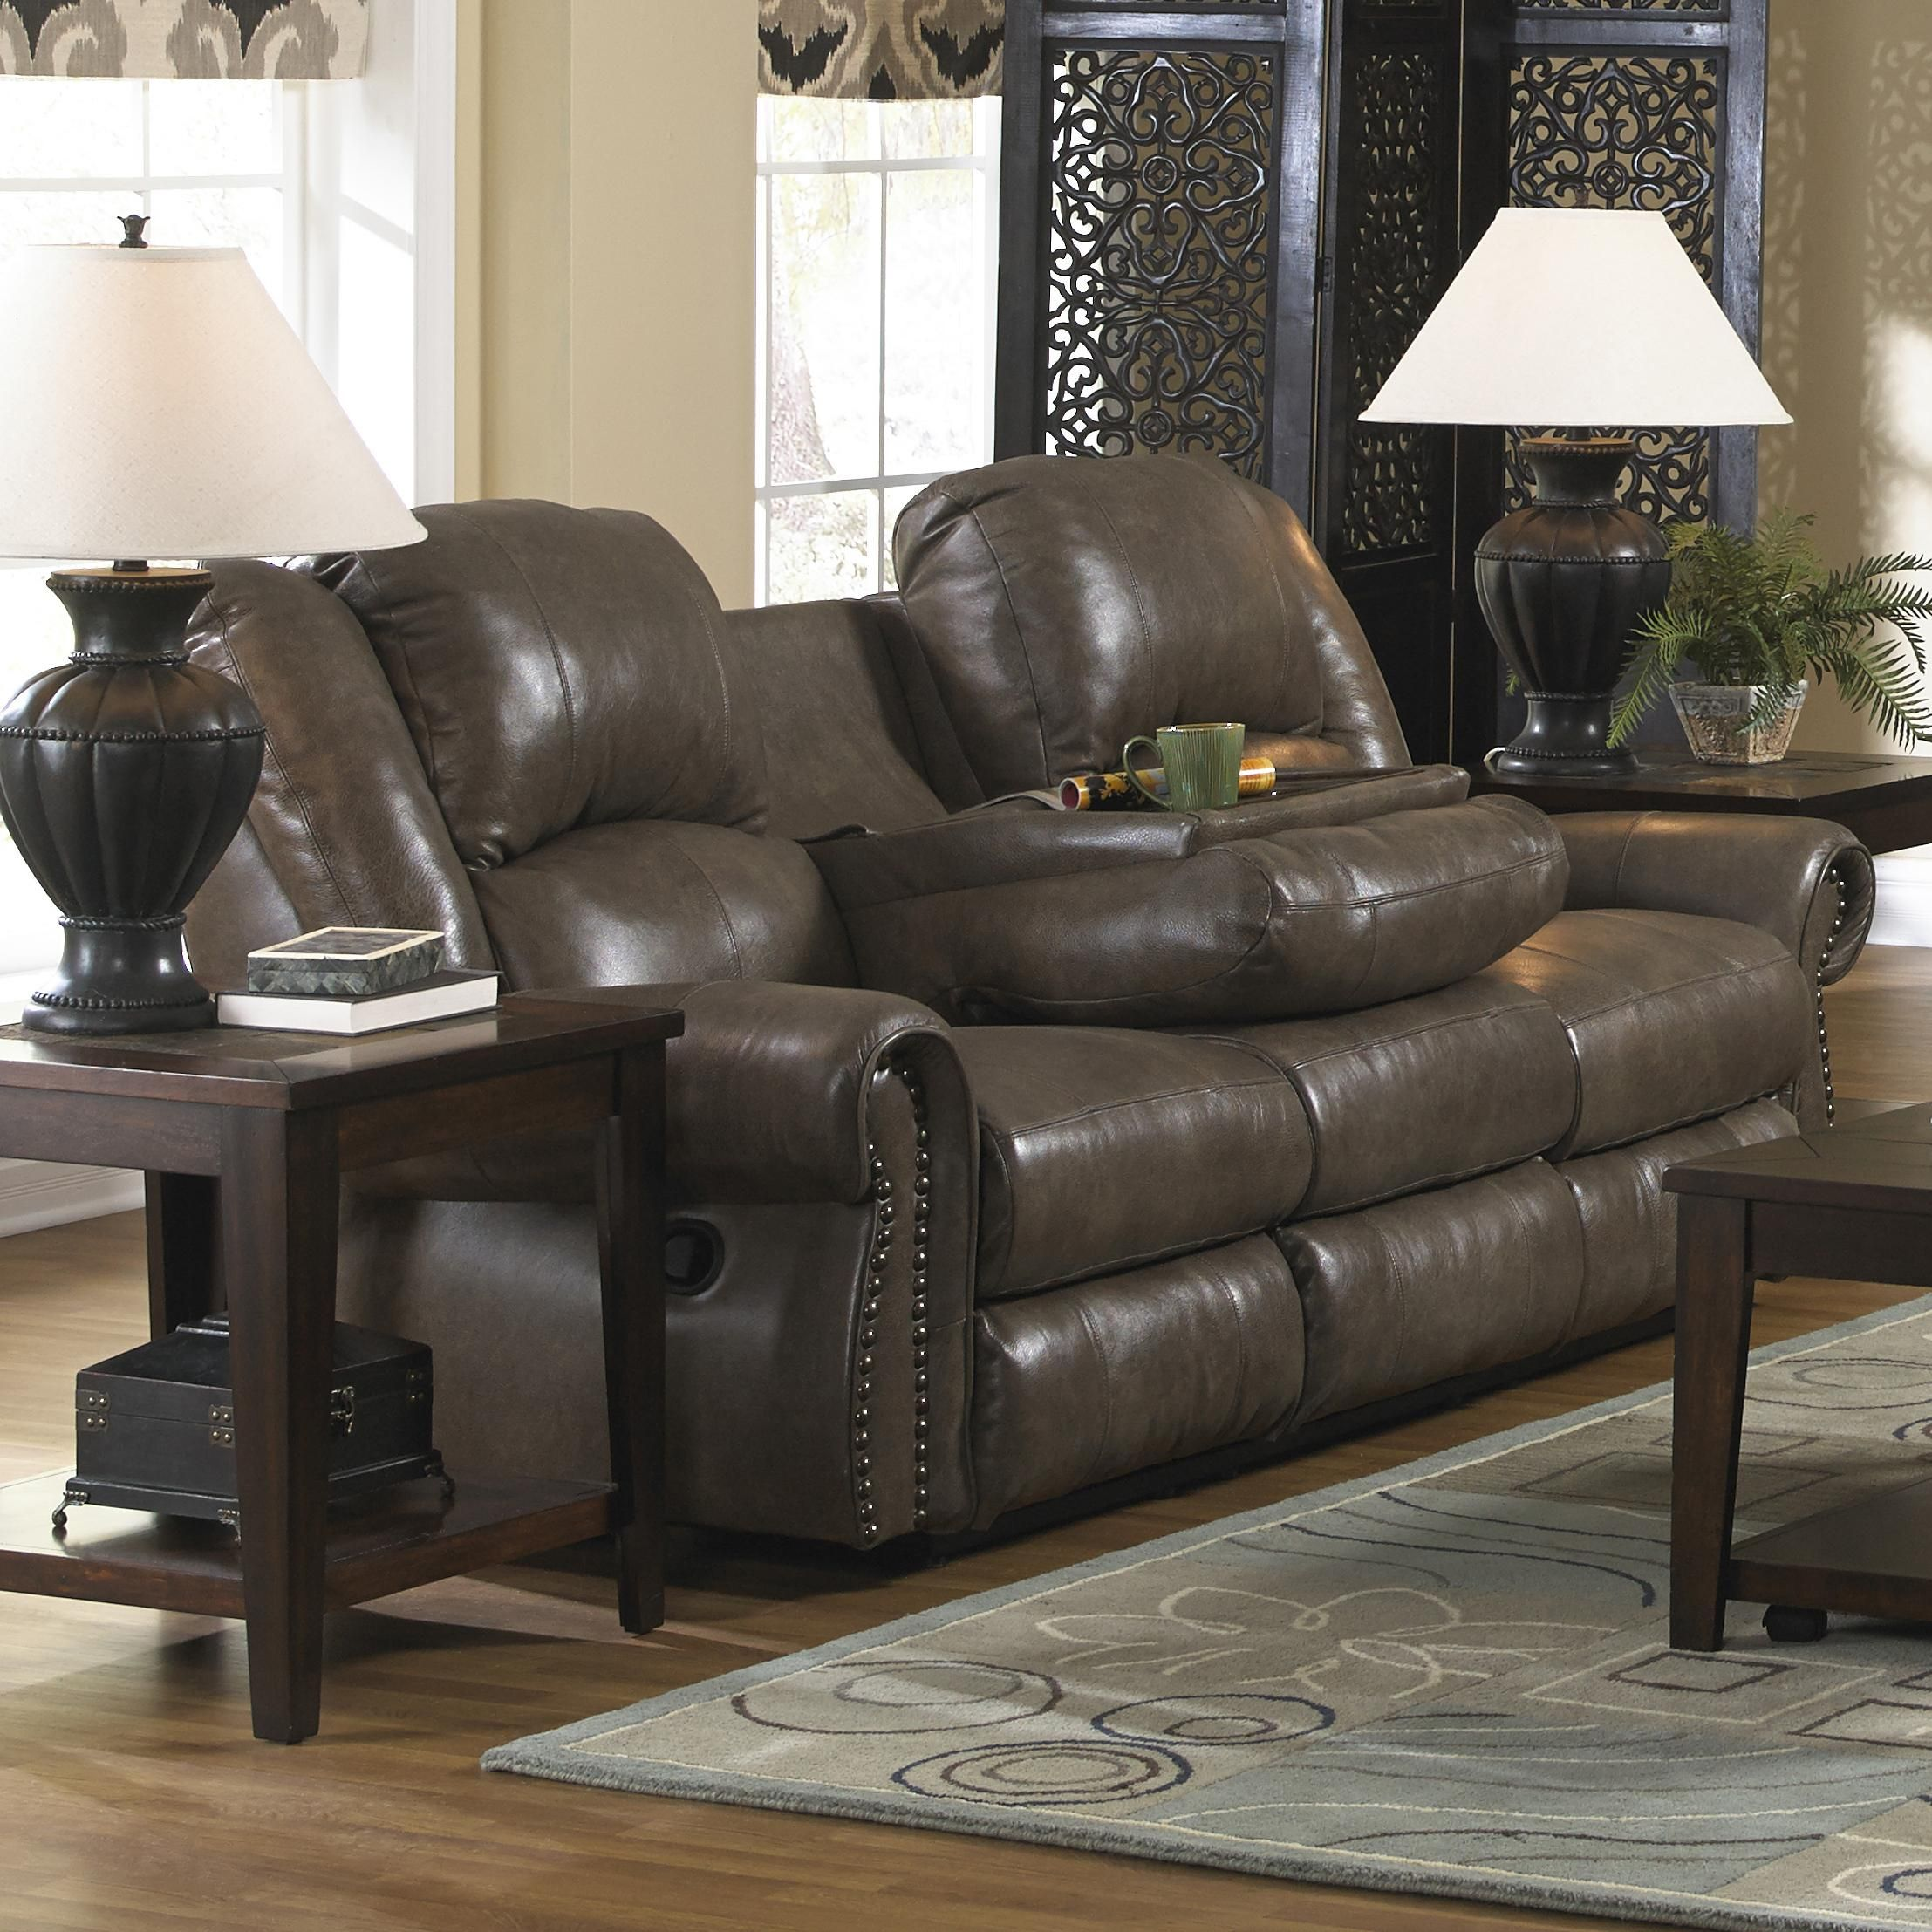 Livingston power reclining sofa with drop down table by catnapper livingston power reclining sofa with drop down table by catnapper geotapseo Choice Image